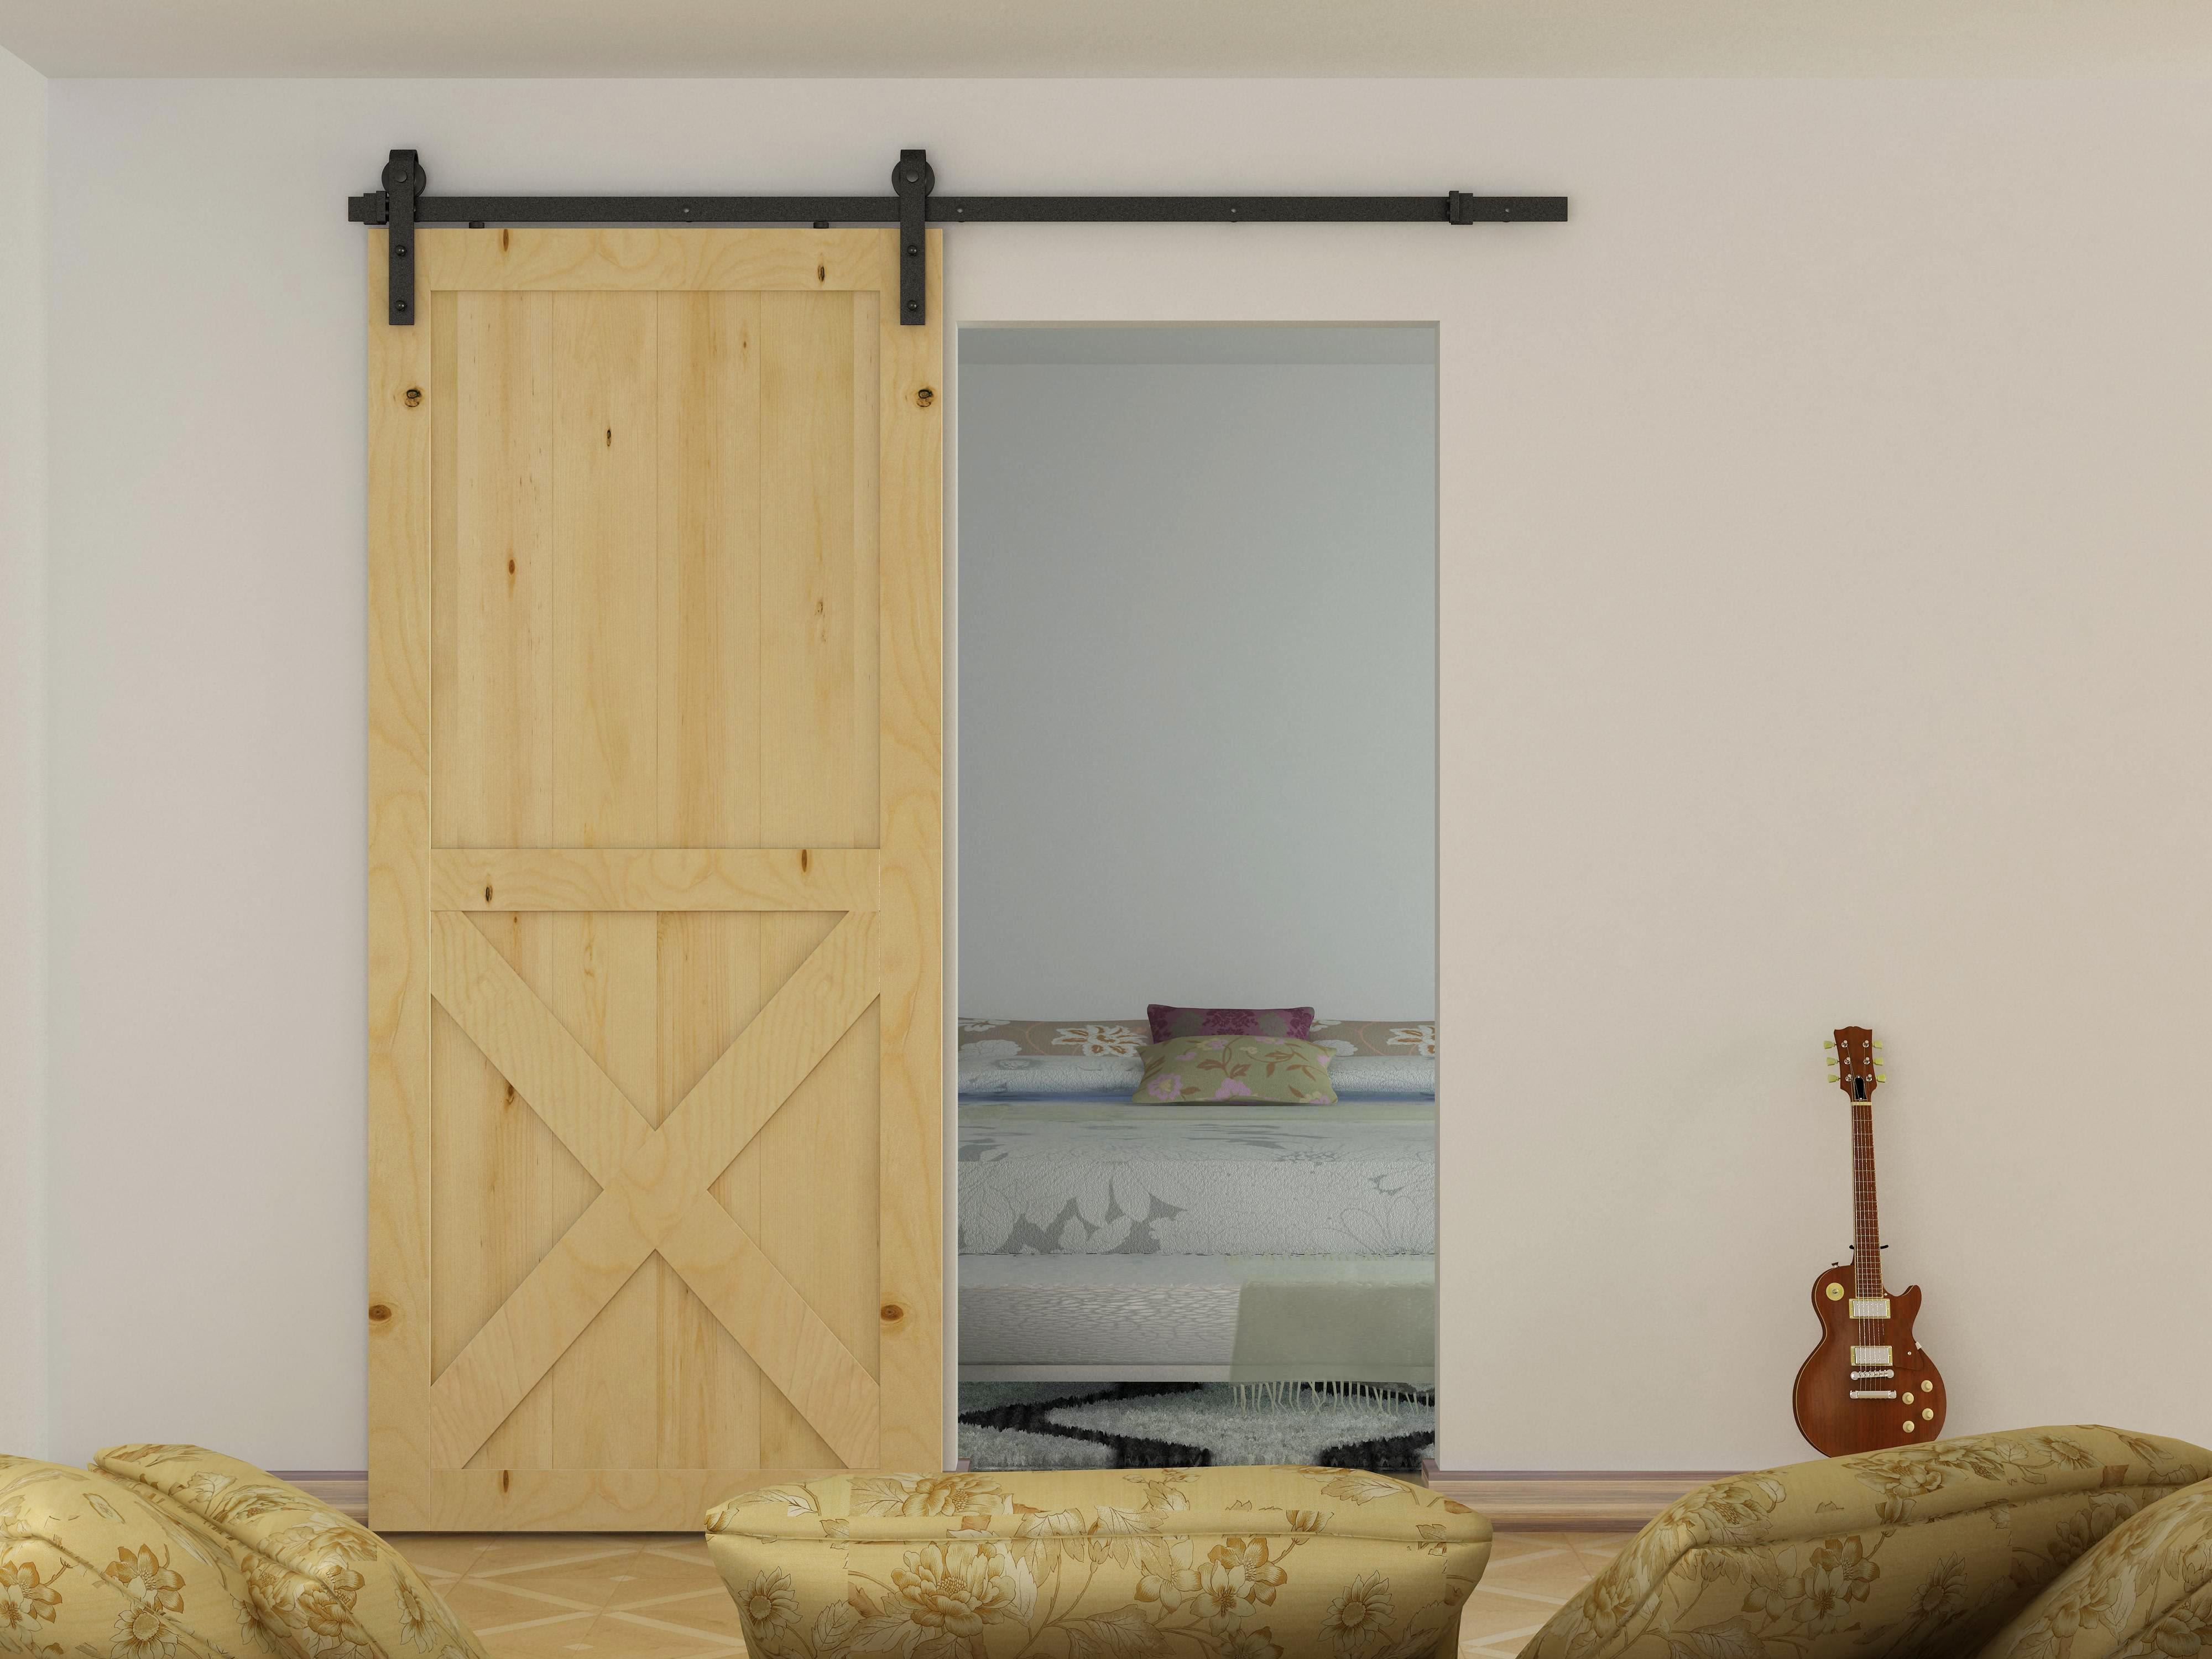 Image of 1.8m Sliding Barn Door Hardware